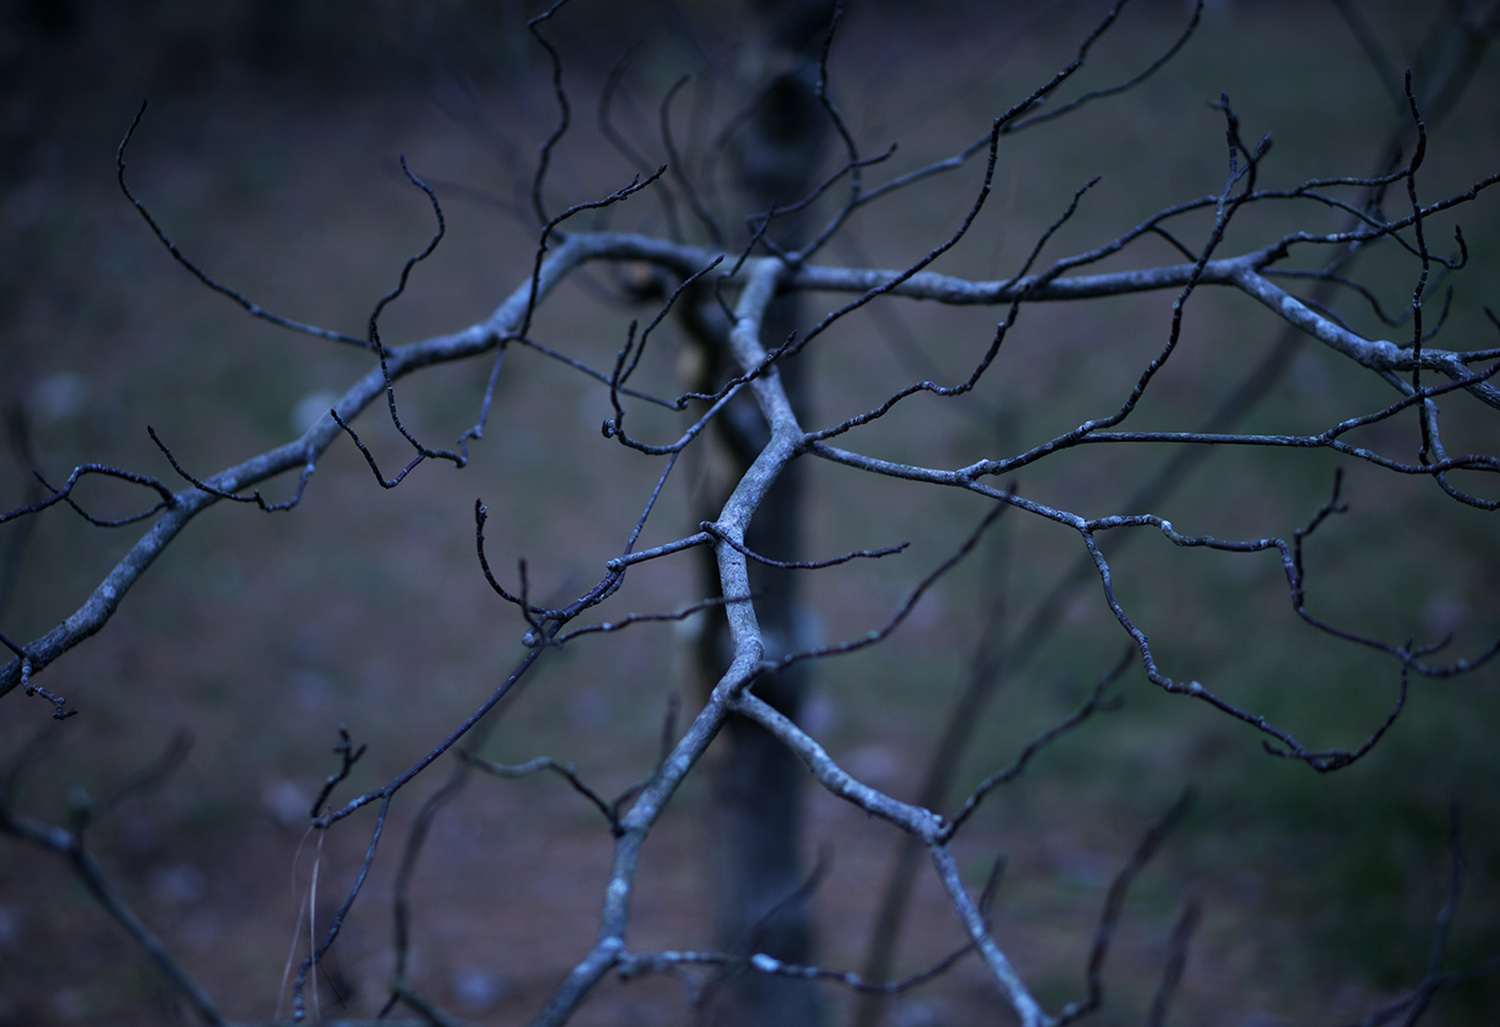 35. dancing limbs, by k. bos